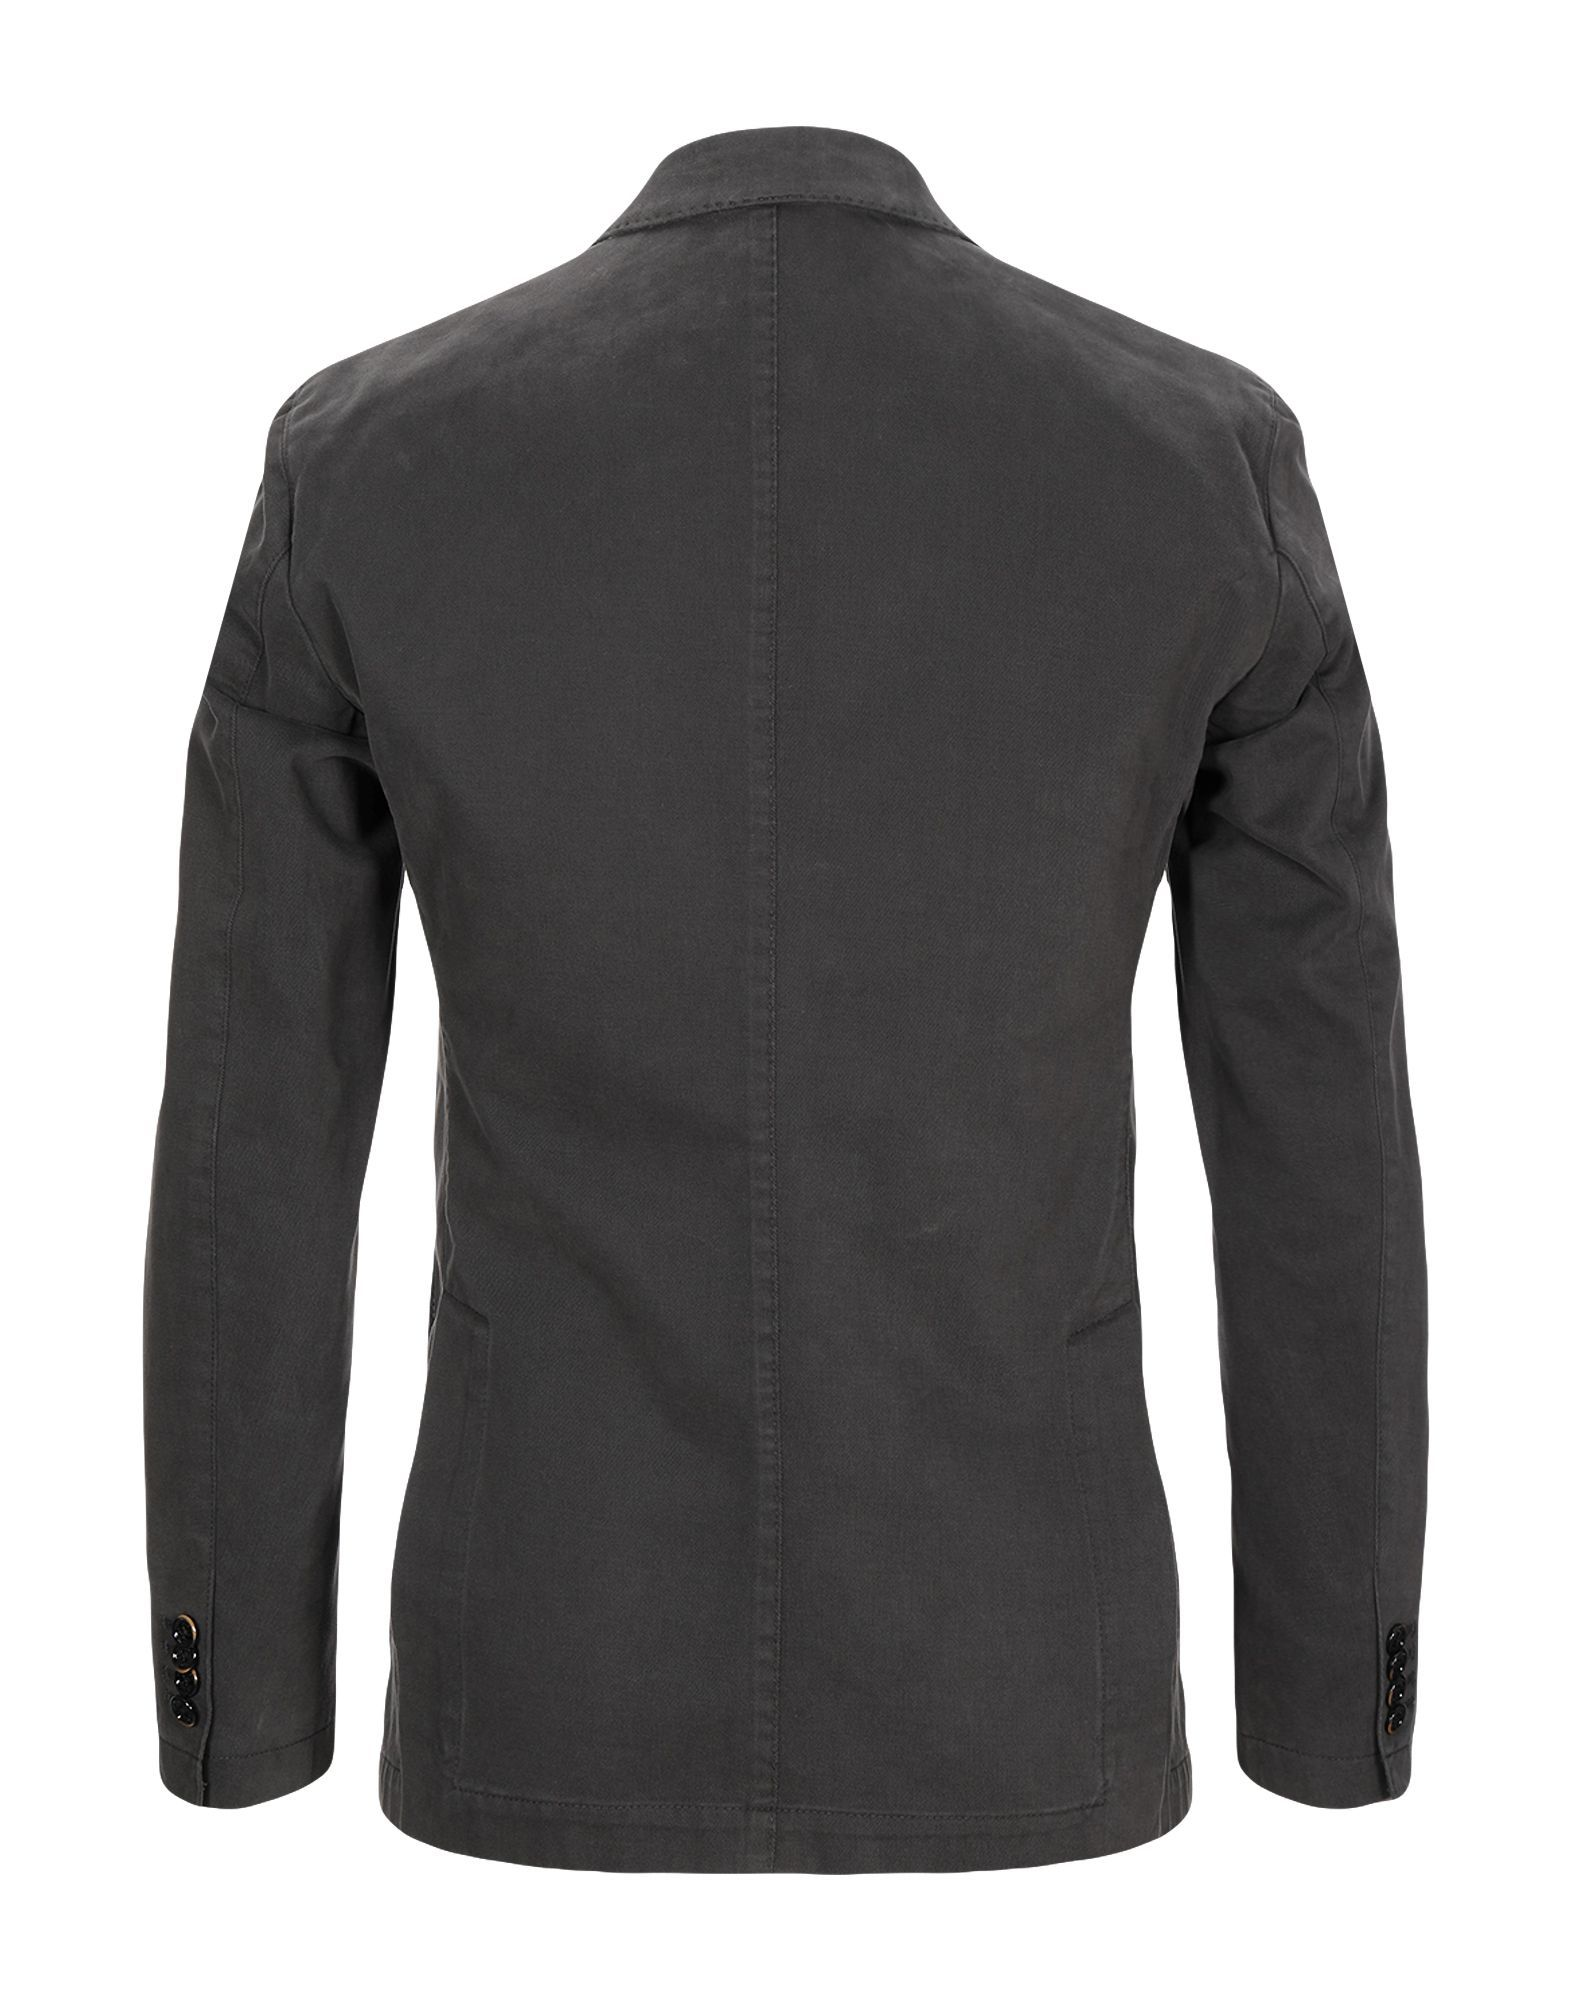 SUITS AND JACKETS At.P.Co Lead Man Cotton